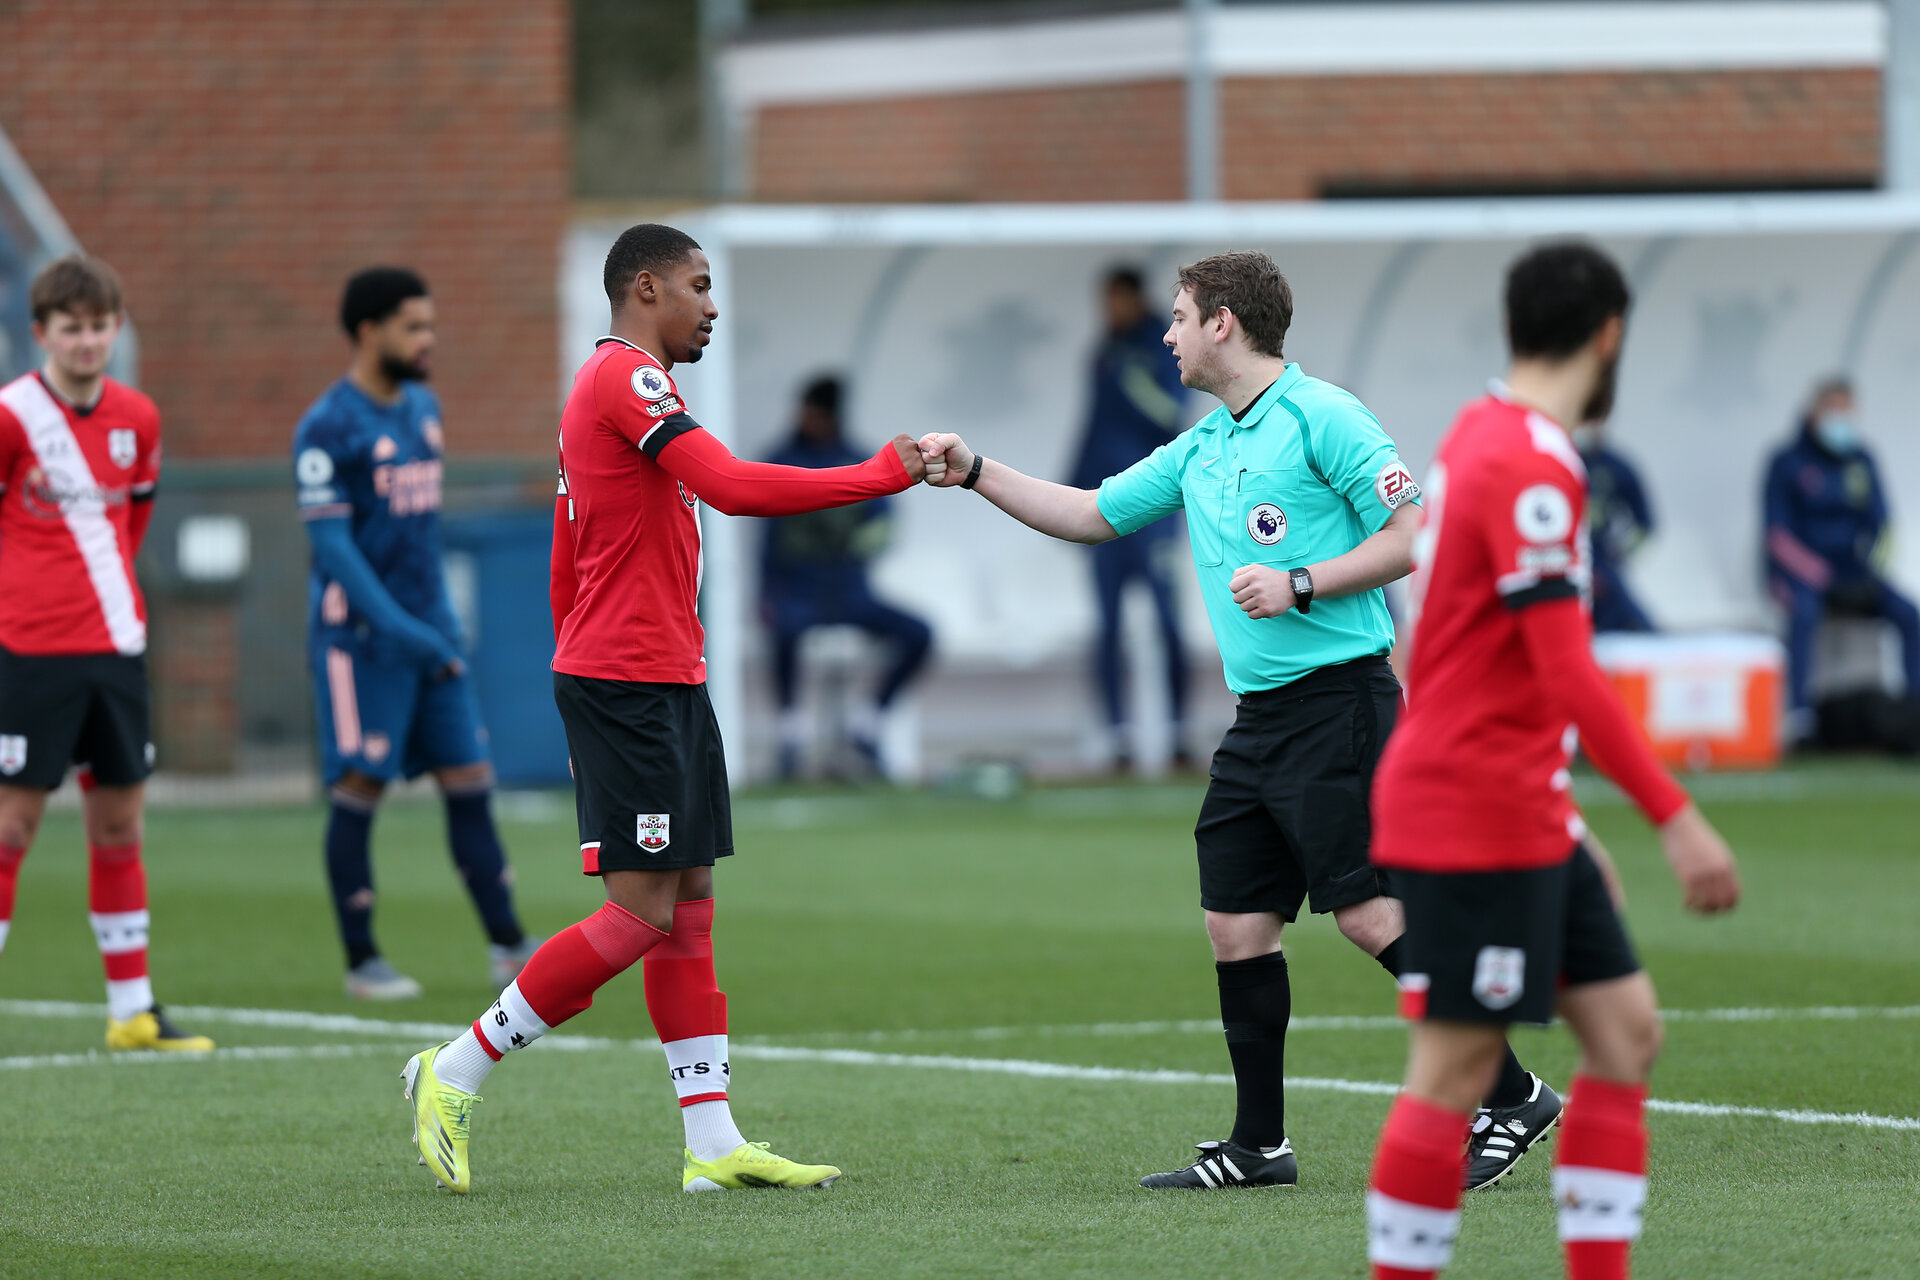 SOUTHAMPTON, ENGLAND - MARCH 06: during the Premier League 2 match between  Southampton B Team and Arsenal at Snows Stadium on March 06, 2021 in Southampton, England. (Photo by Chris Moorhouse/Southampton FC via Getty Images)